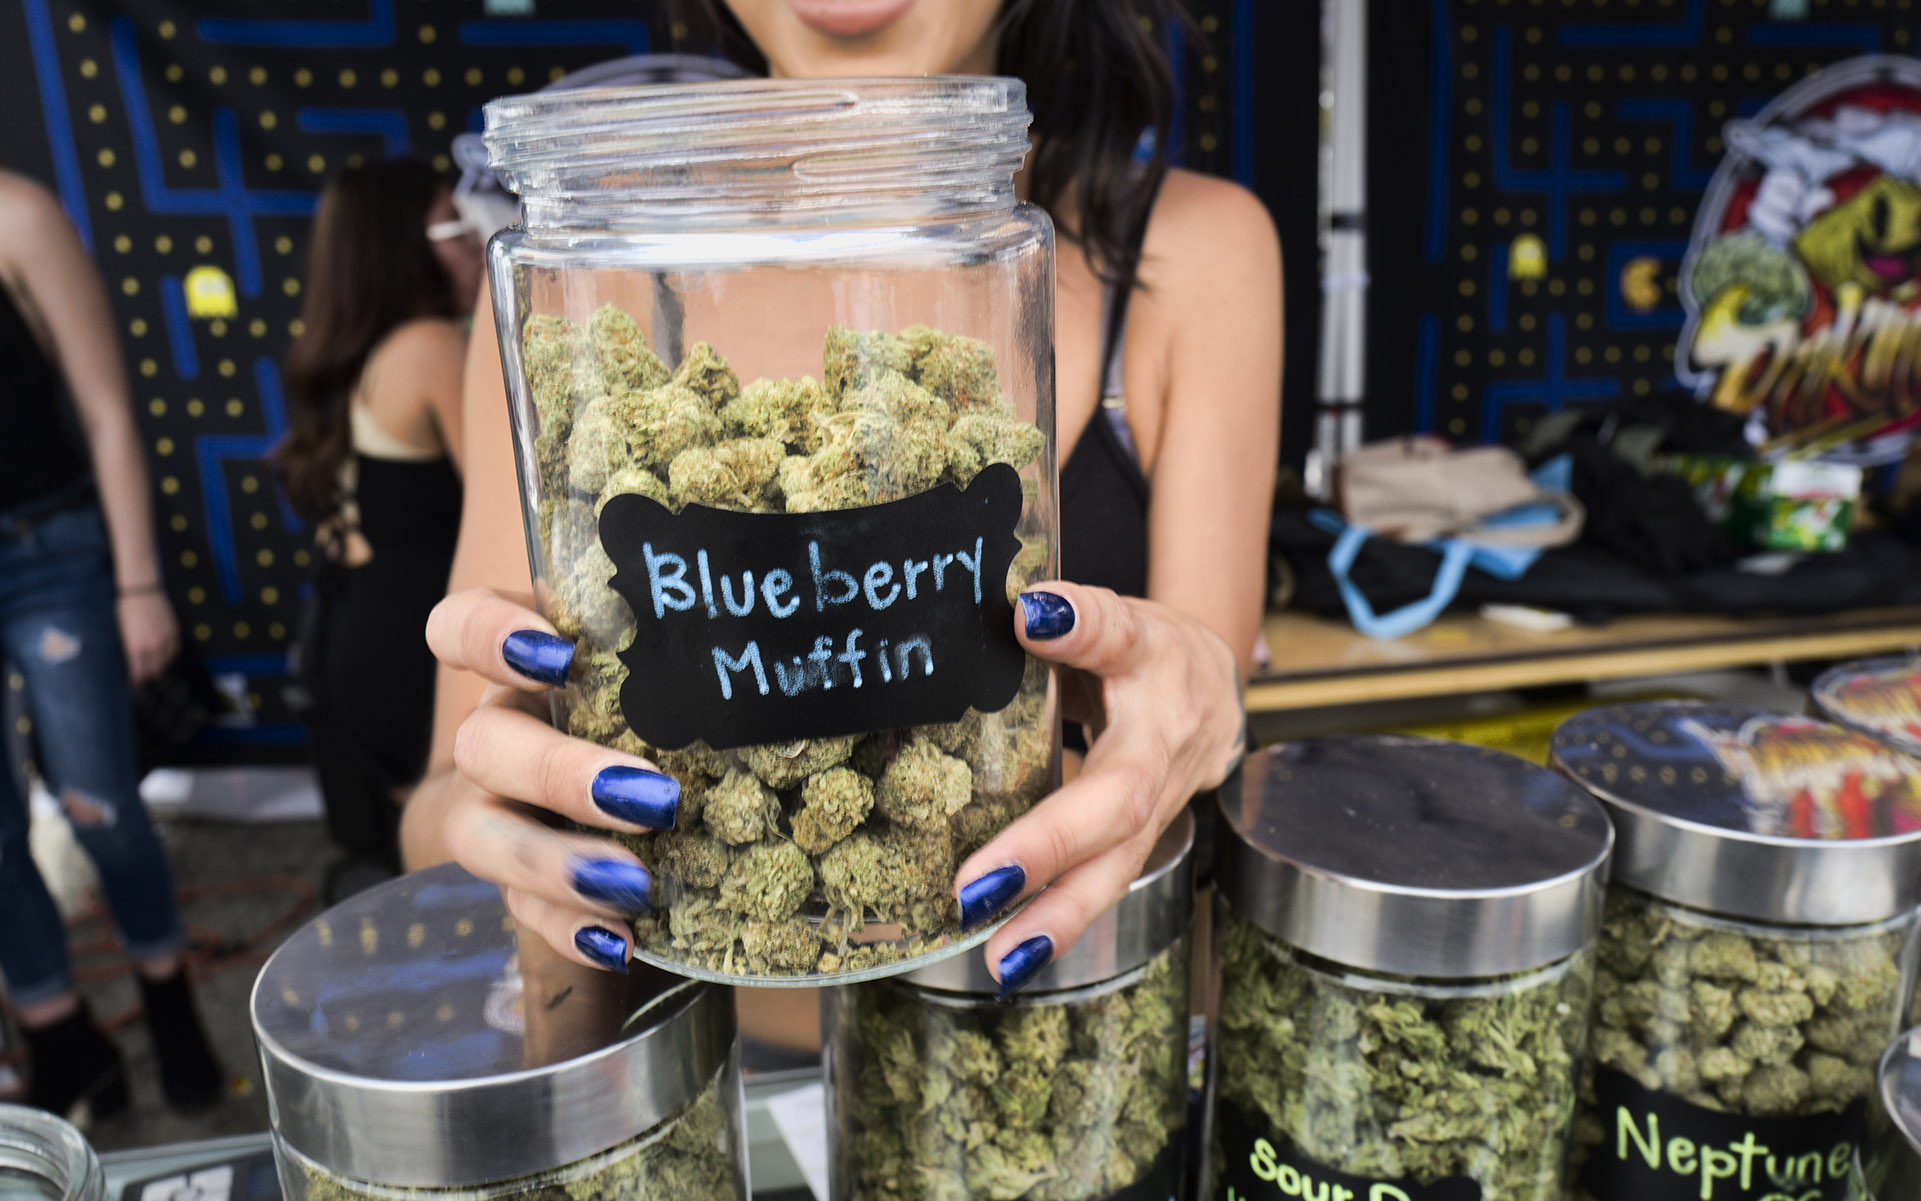 In this Saturday, April 21, 2018 photo a bud tender displays their Blueberry Muffin strain of cannabis at the High Times 420 SoCal Cannabis Cup in San Bernardino, Calif. (AP Photo/Richard Vogel)